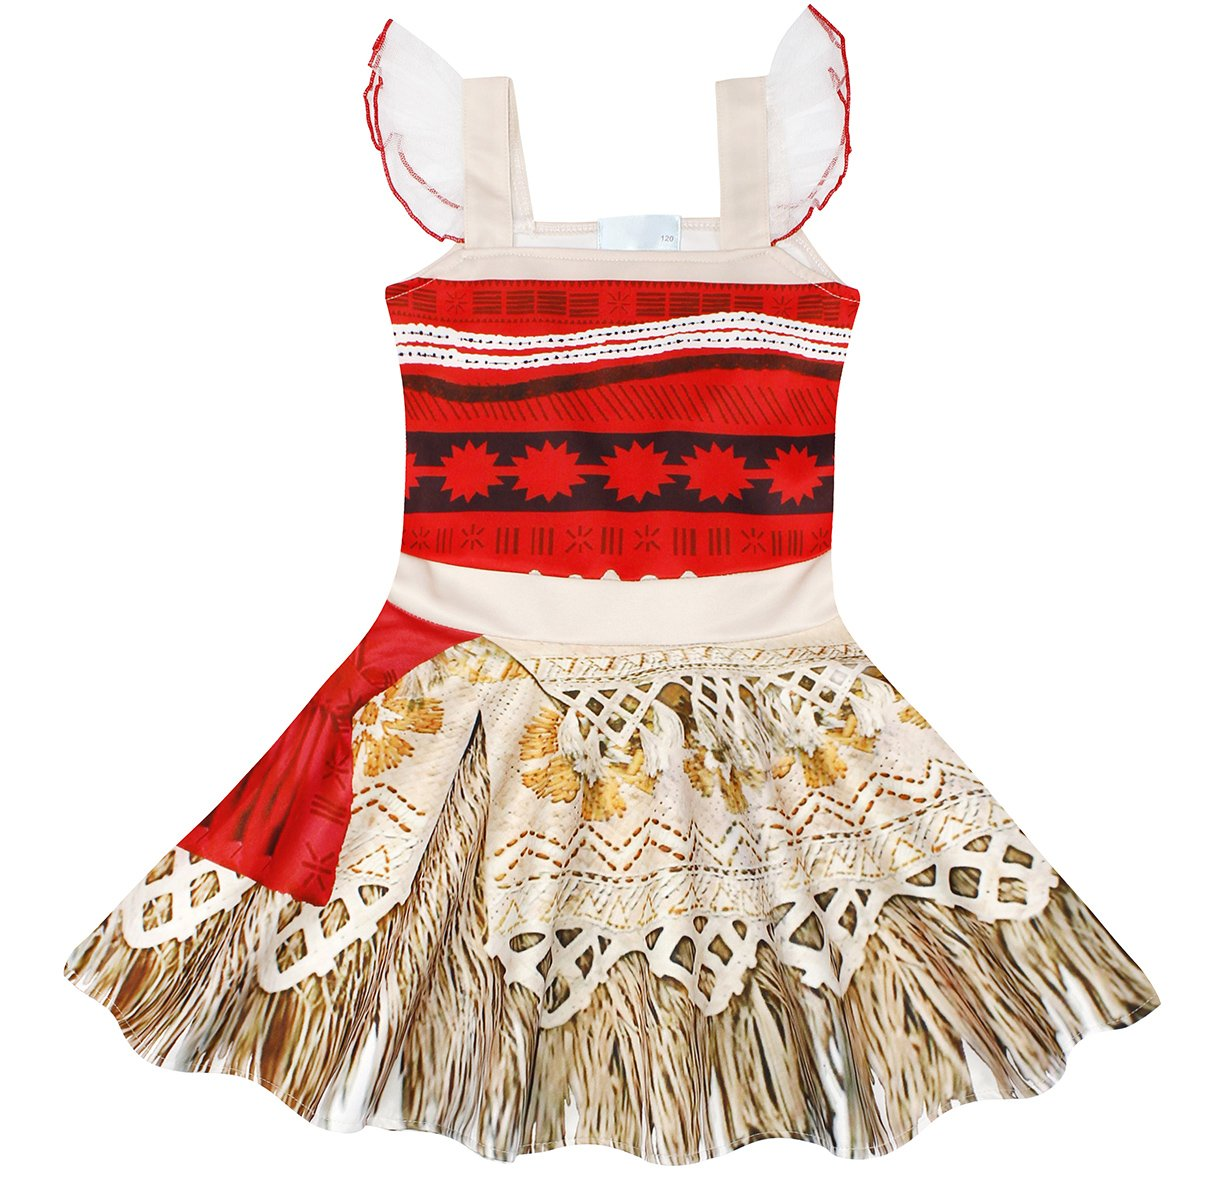 Girls' Clothing (sizes 4 & Up) Clothing, Shoes & Accessories Objective Moana Costume Princess Dress Girls Halloween Cosplay Dress Sleeveless Gown Dress